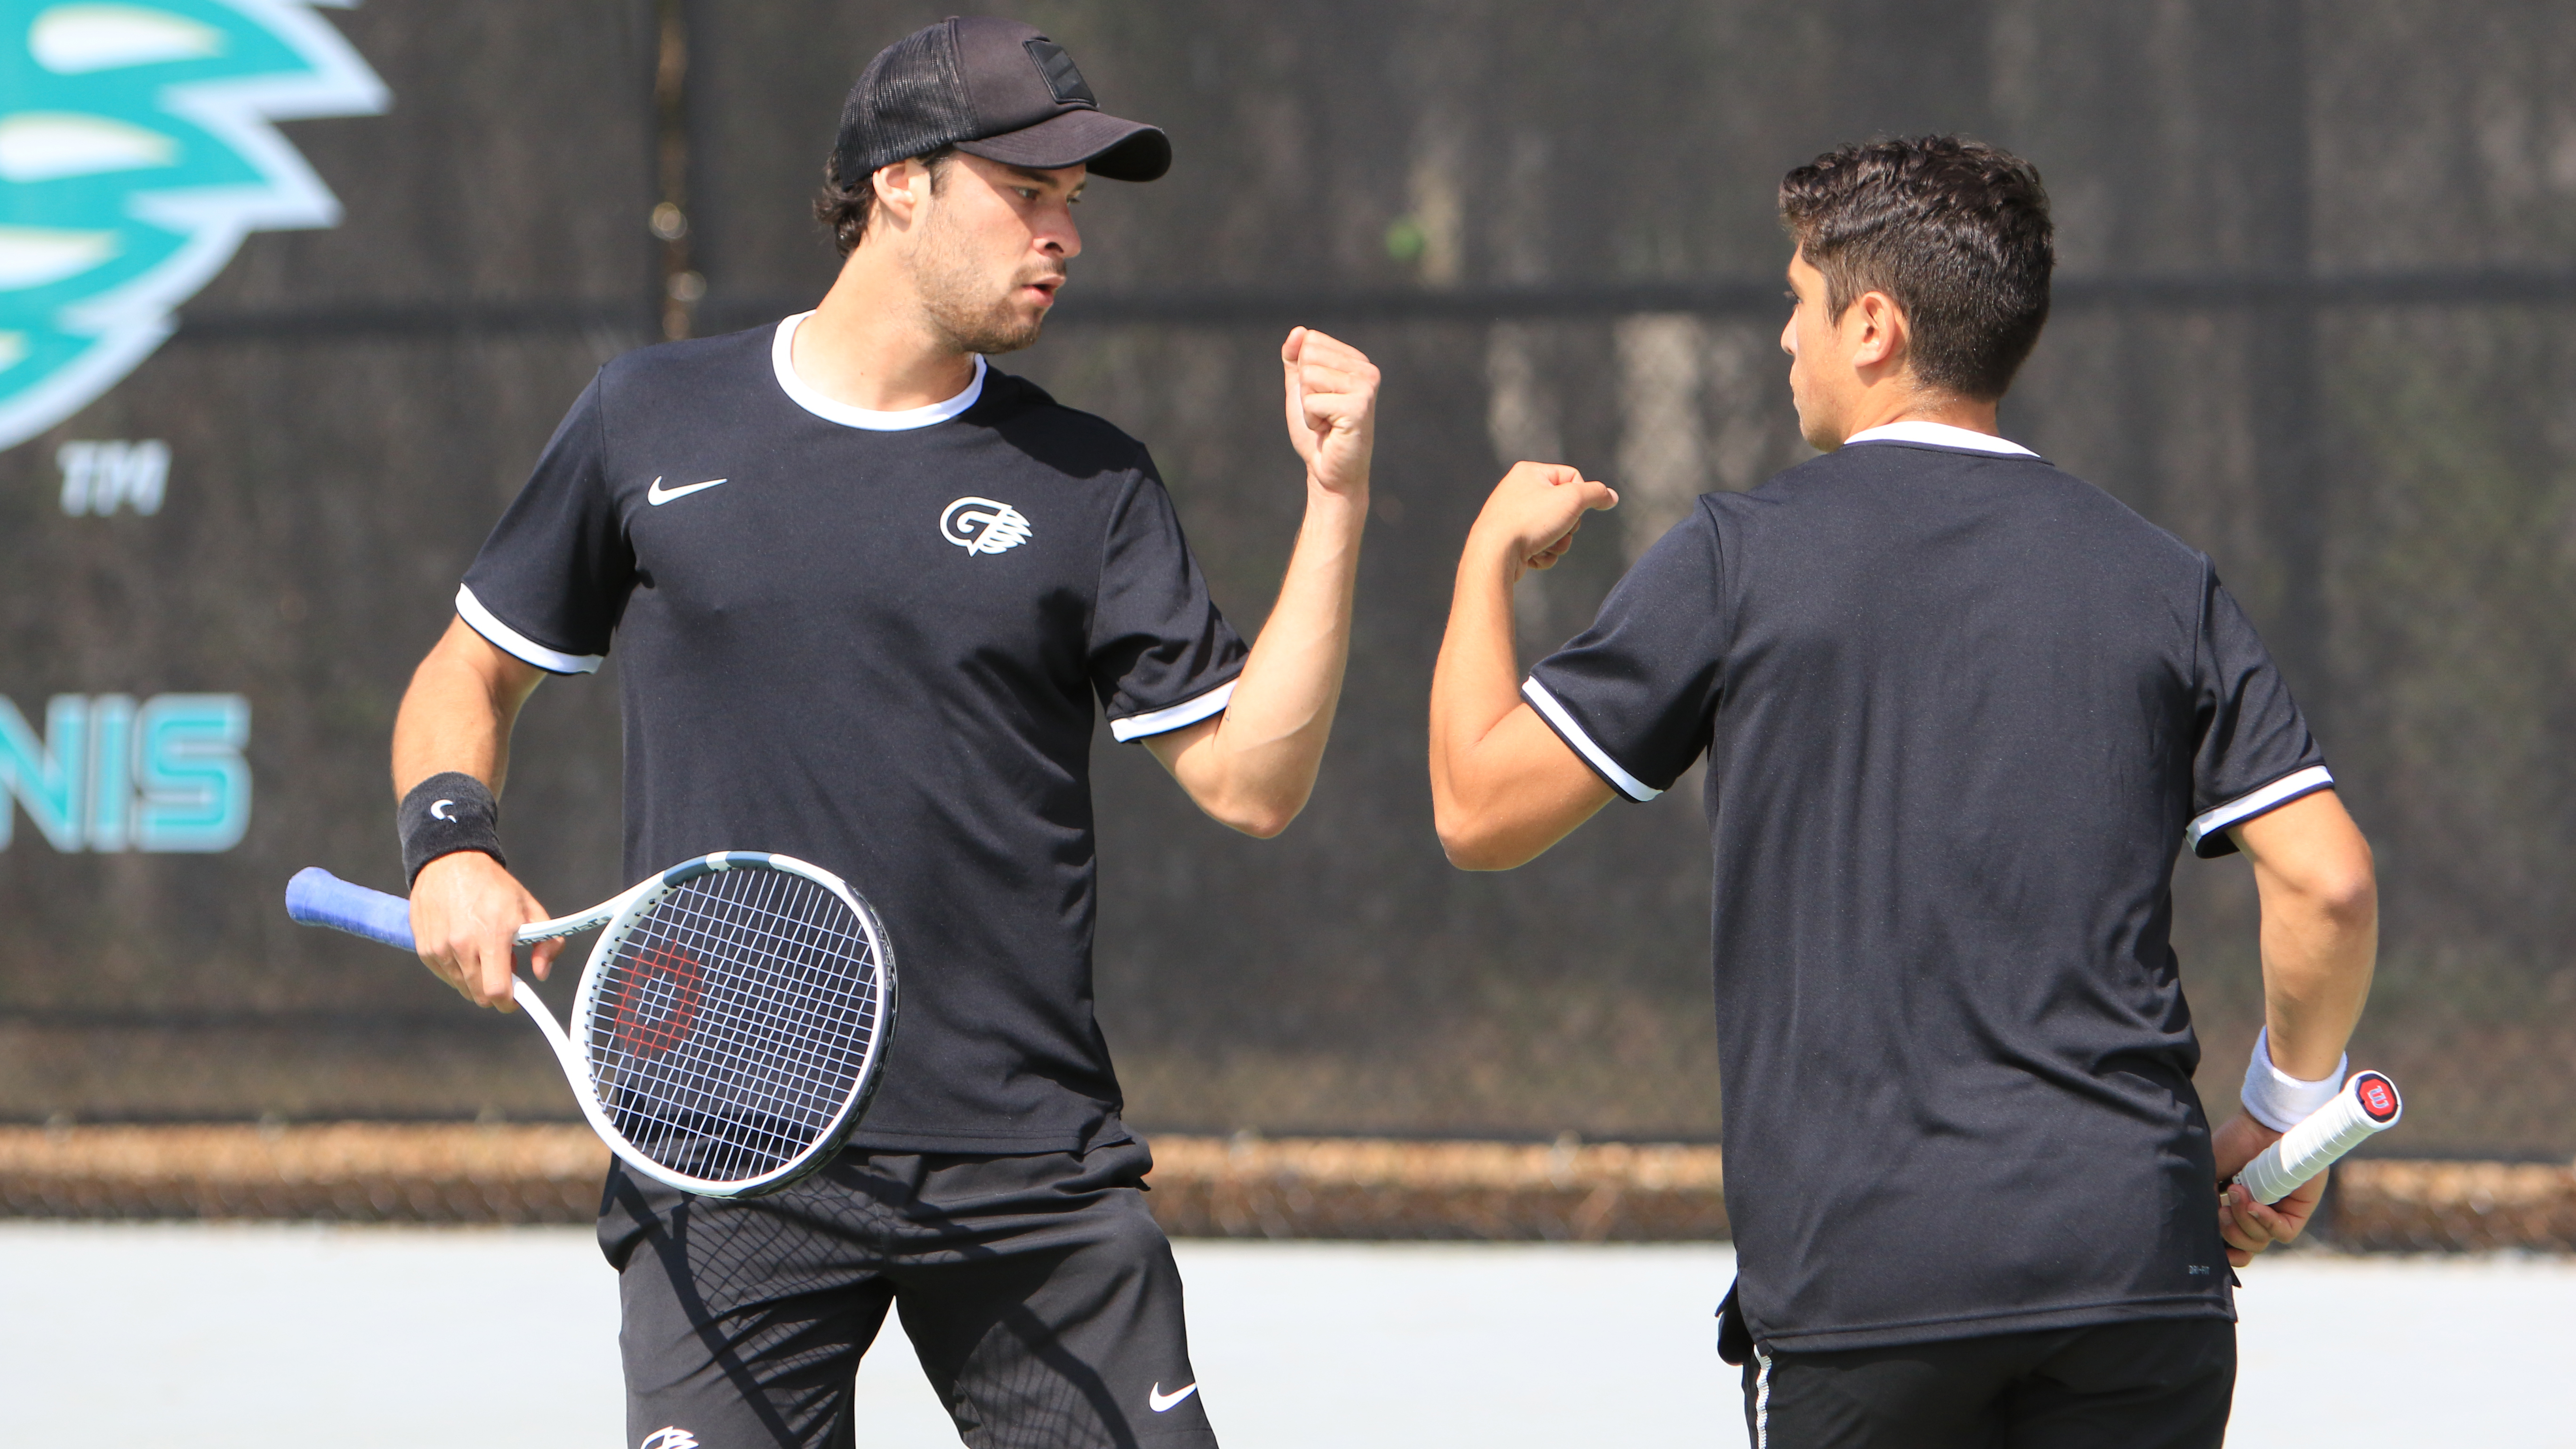 2018 NAIA Men's Tennis Coaches' Top 25 Poll No. 3 ? (March. 13)